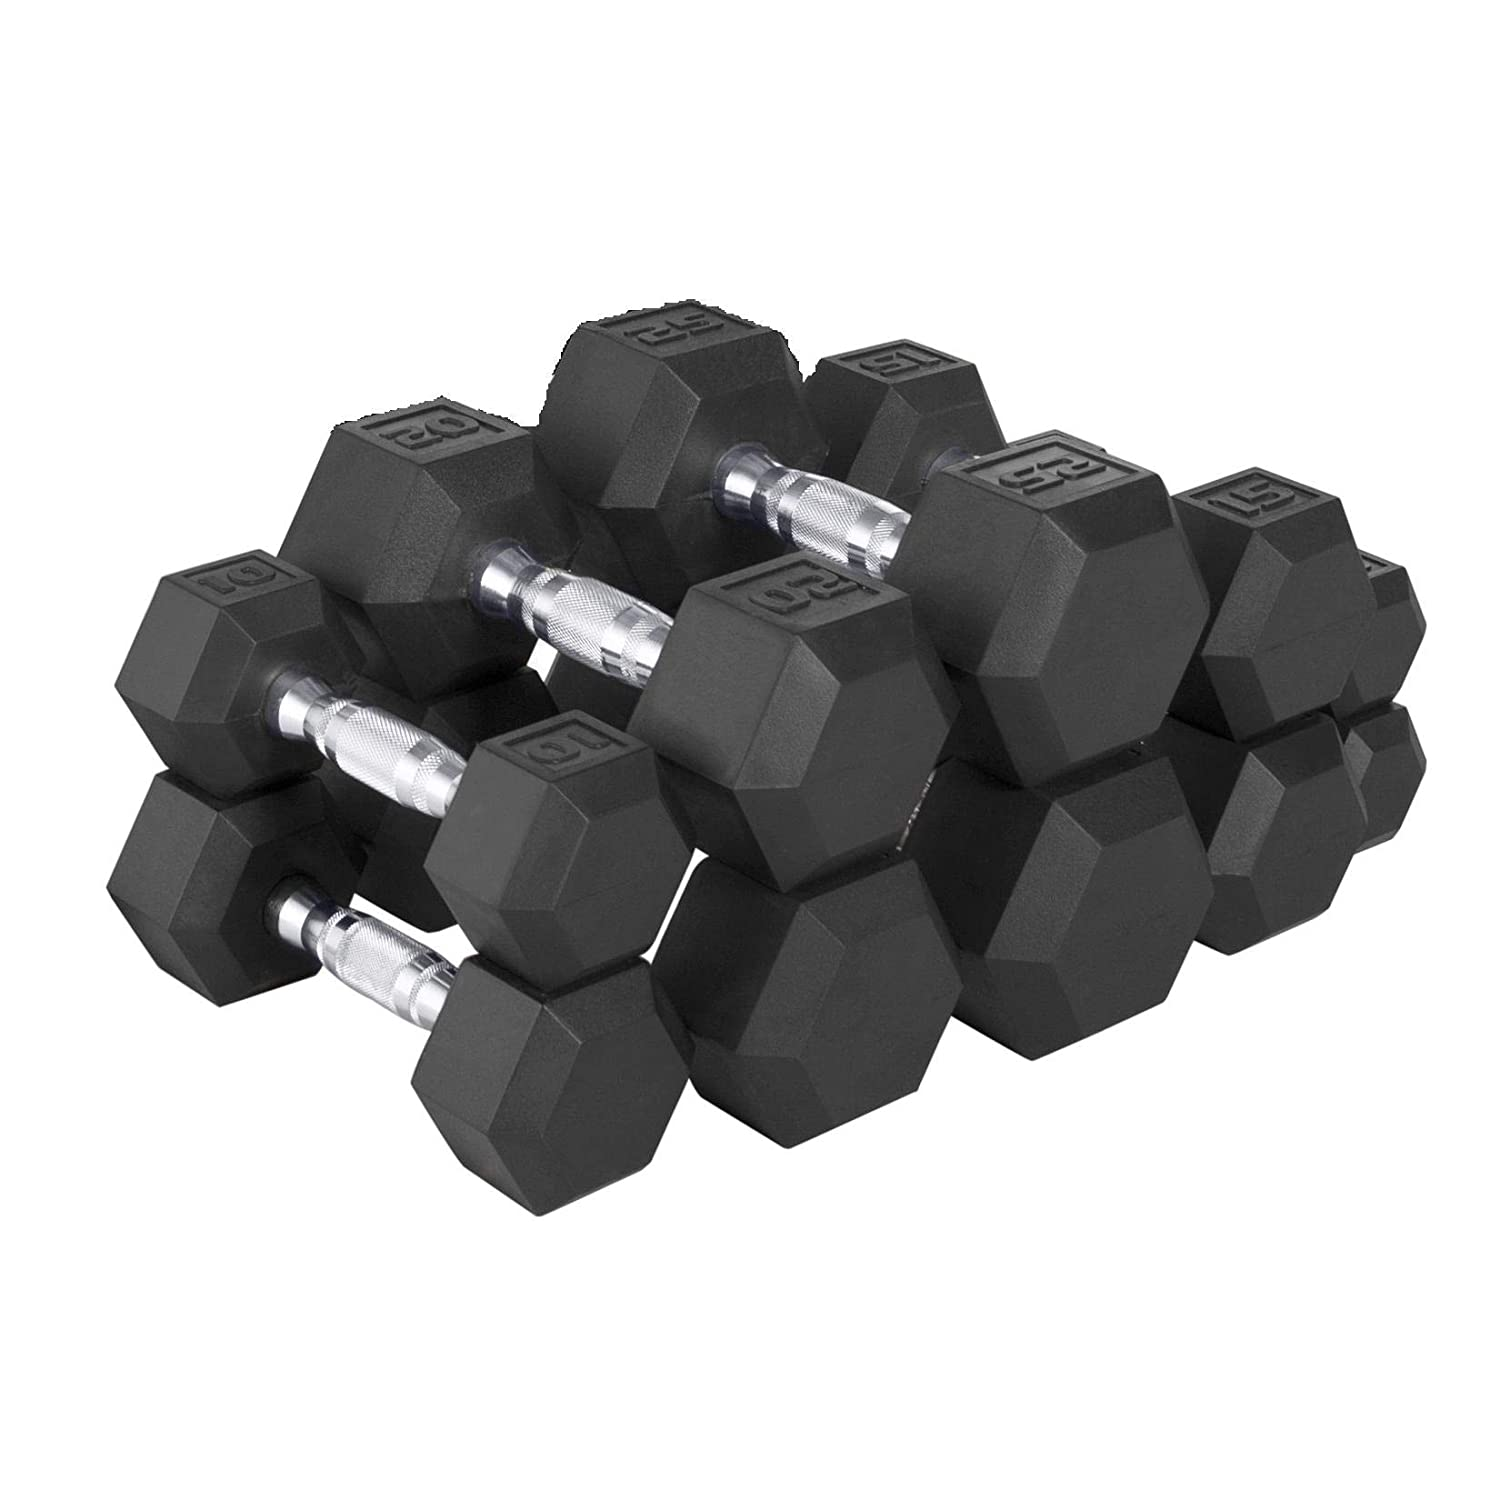 CAP Barbell 150 LB Hex Dumbbell Weight Set, Black, Large